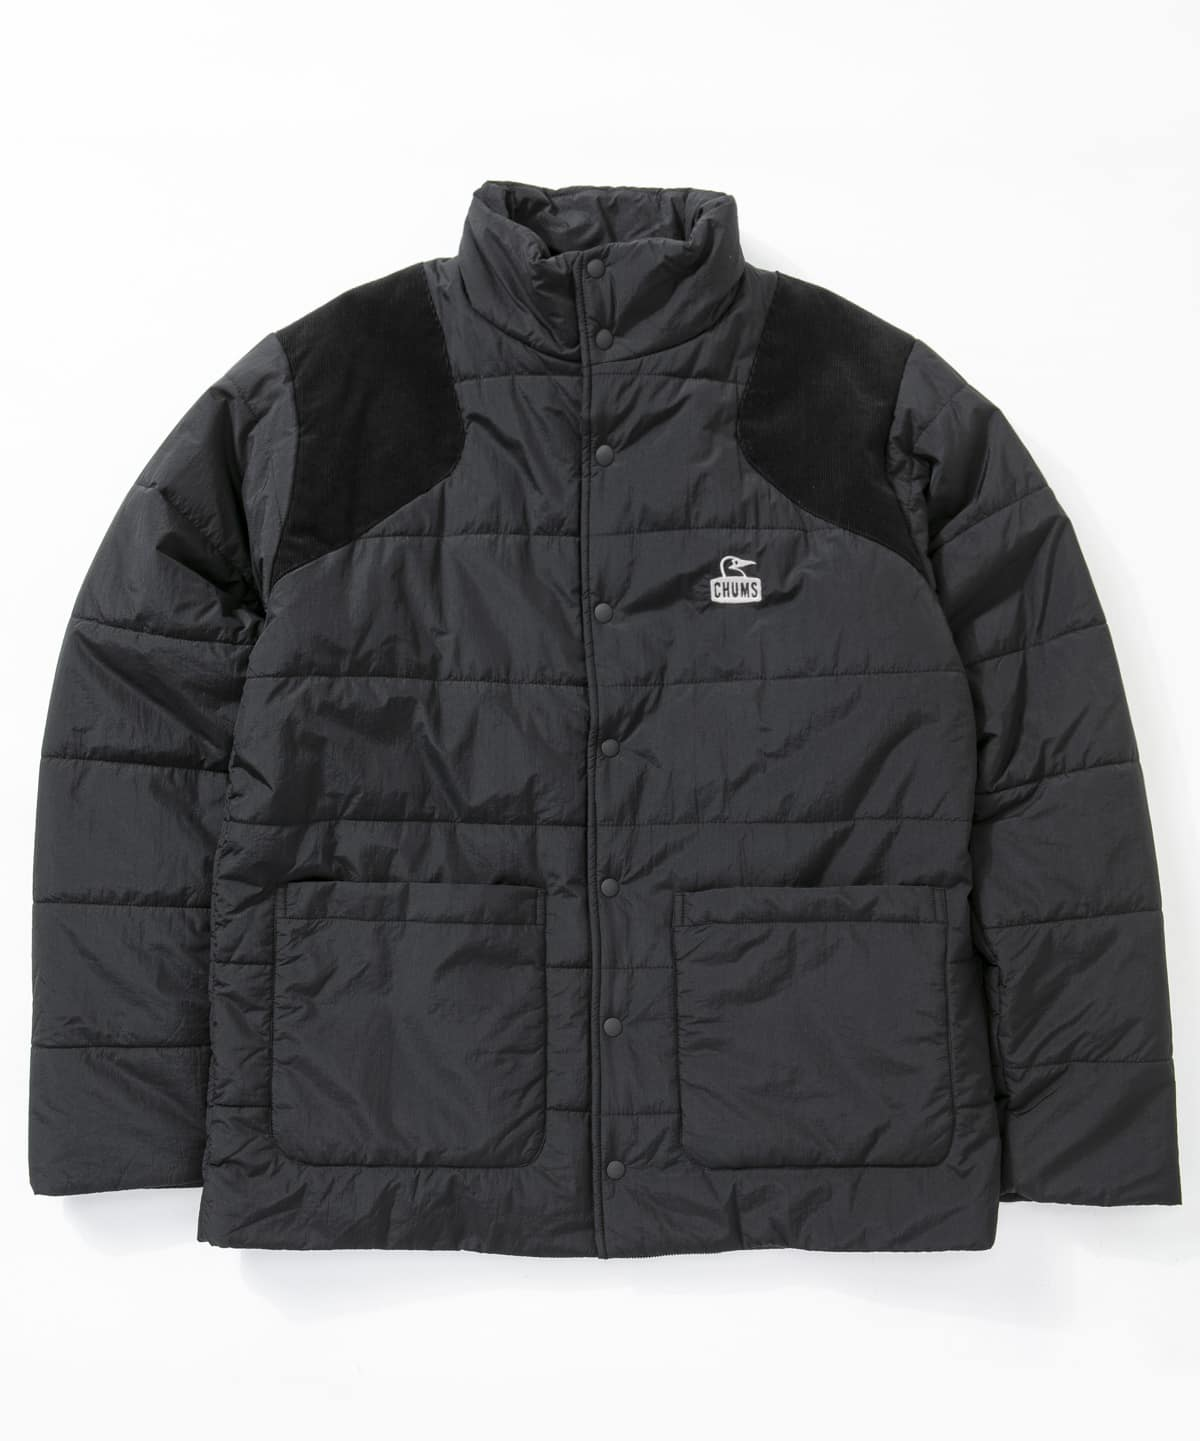 Camping Insulated Jacket(キャンピングインサレートジャケット(ナイロンジャケット))